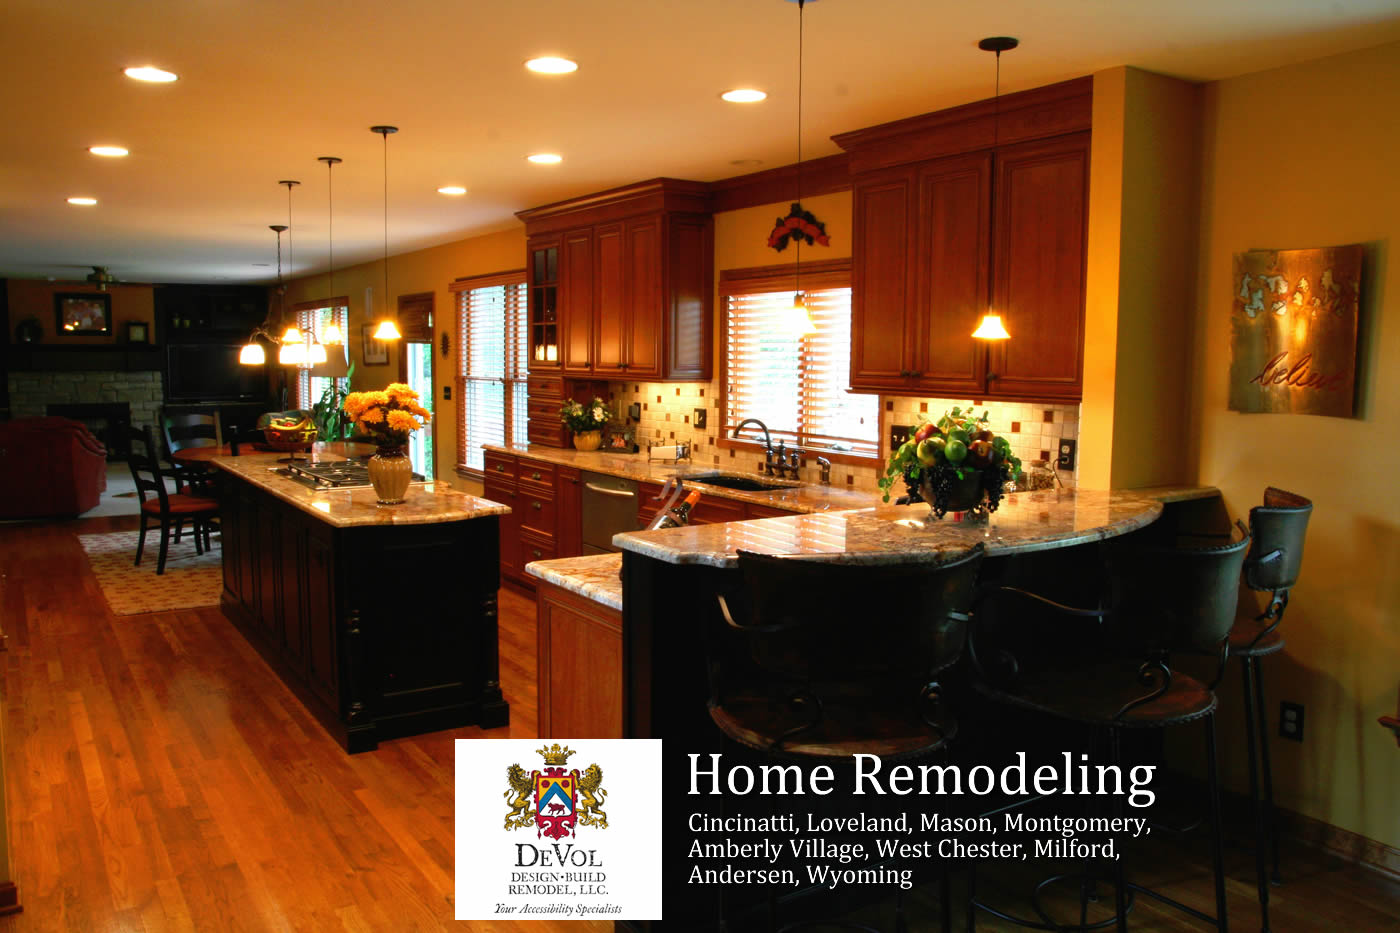 General Remodeling Services